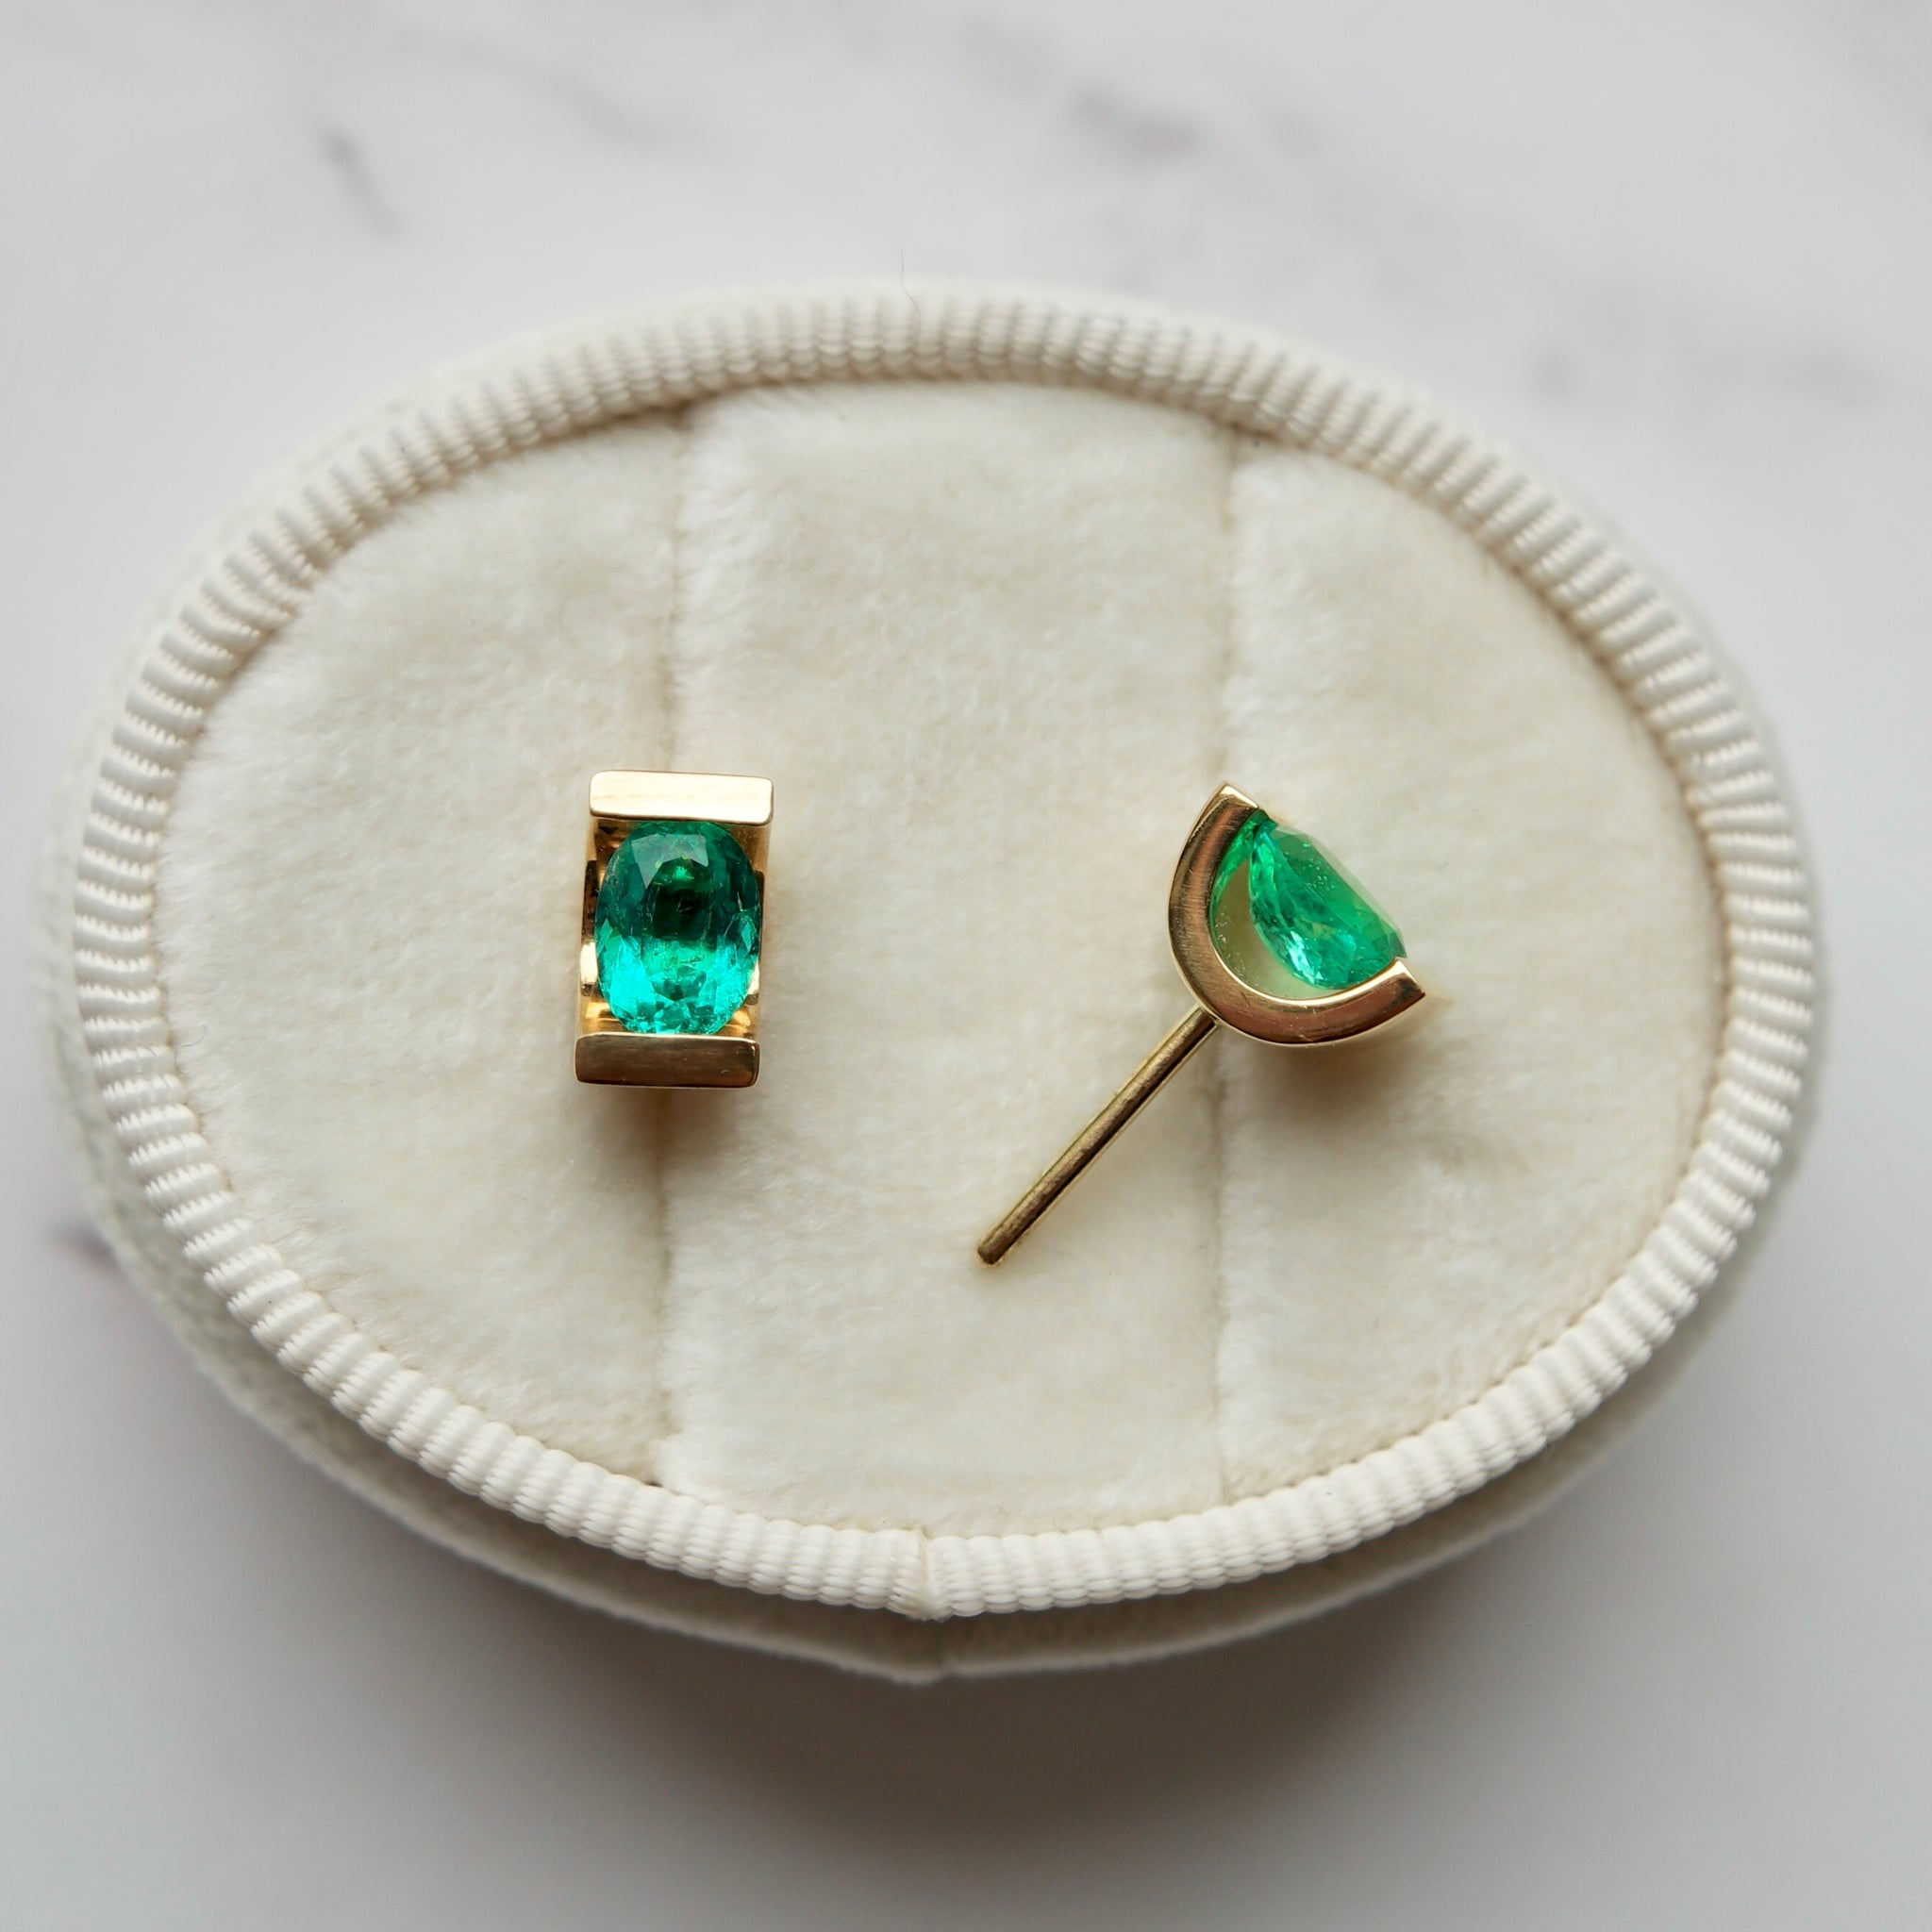 Jewels By Lux 14k Yellow Gold Studs Oval Gemstone and Diamond Earrings